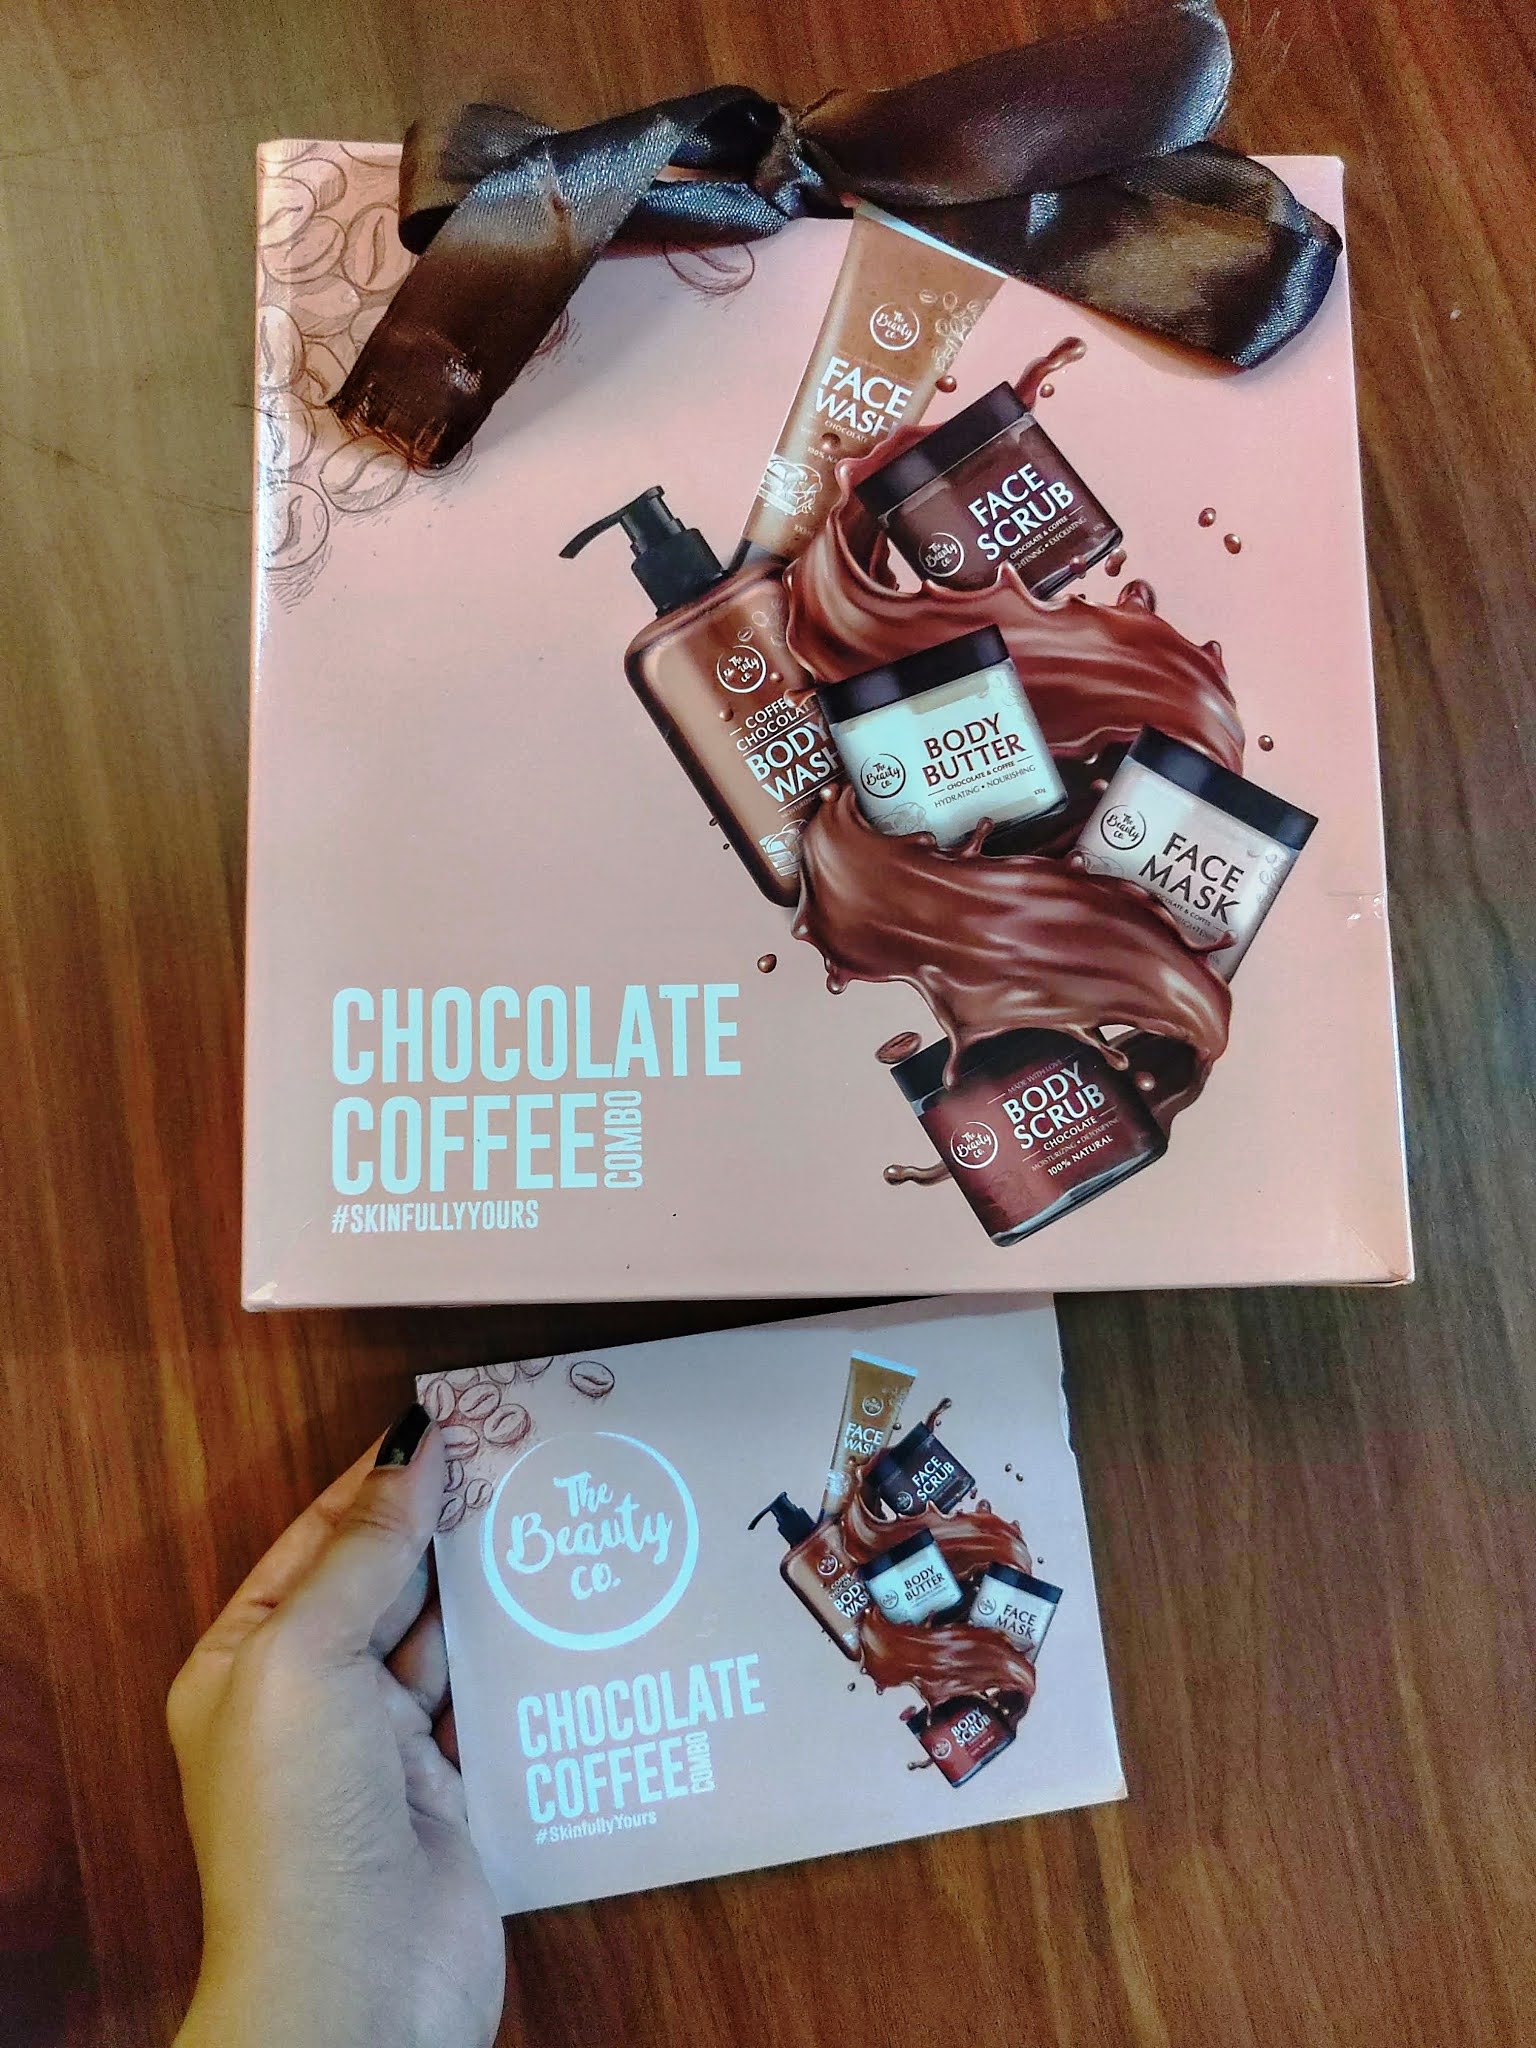 Chocolate Coffee Haul from the Beauty Company